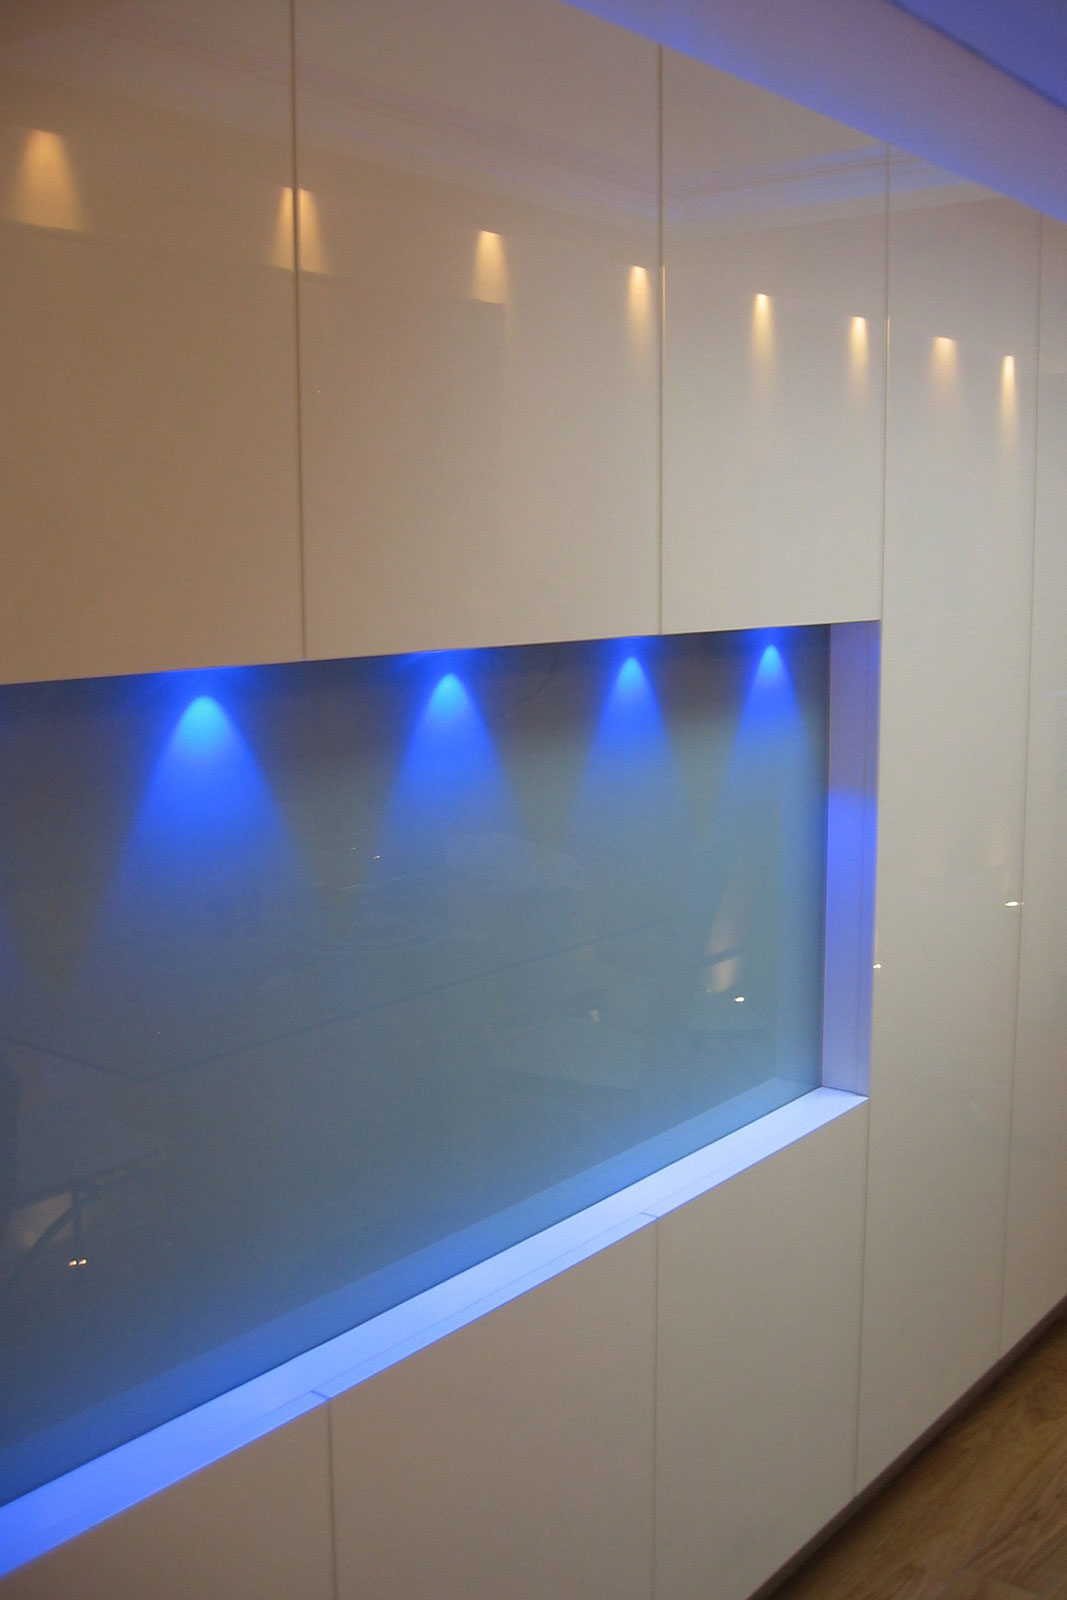 Coloured Glass Wall Cladding with Lighting Effects